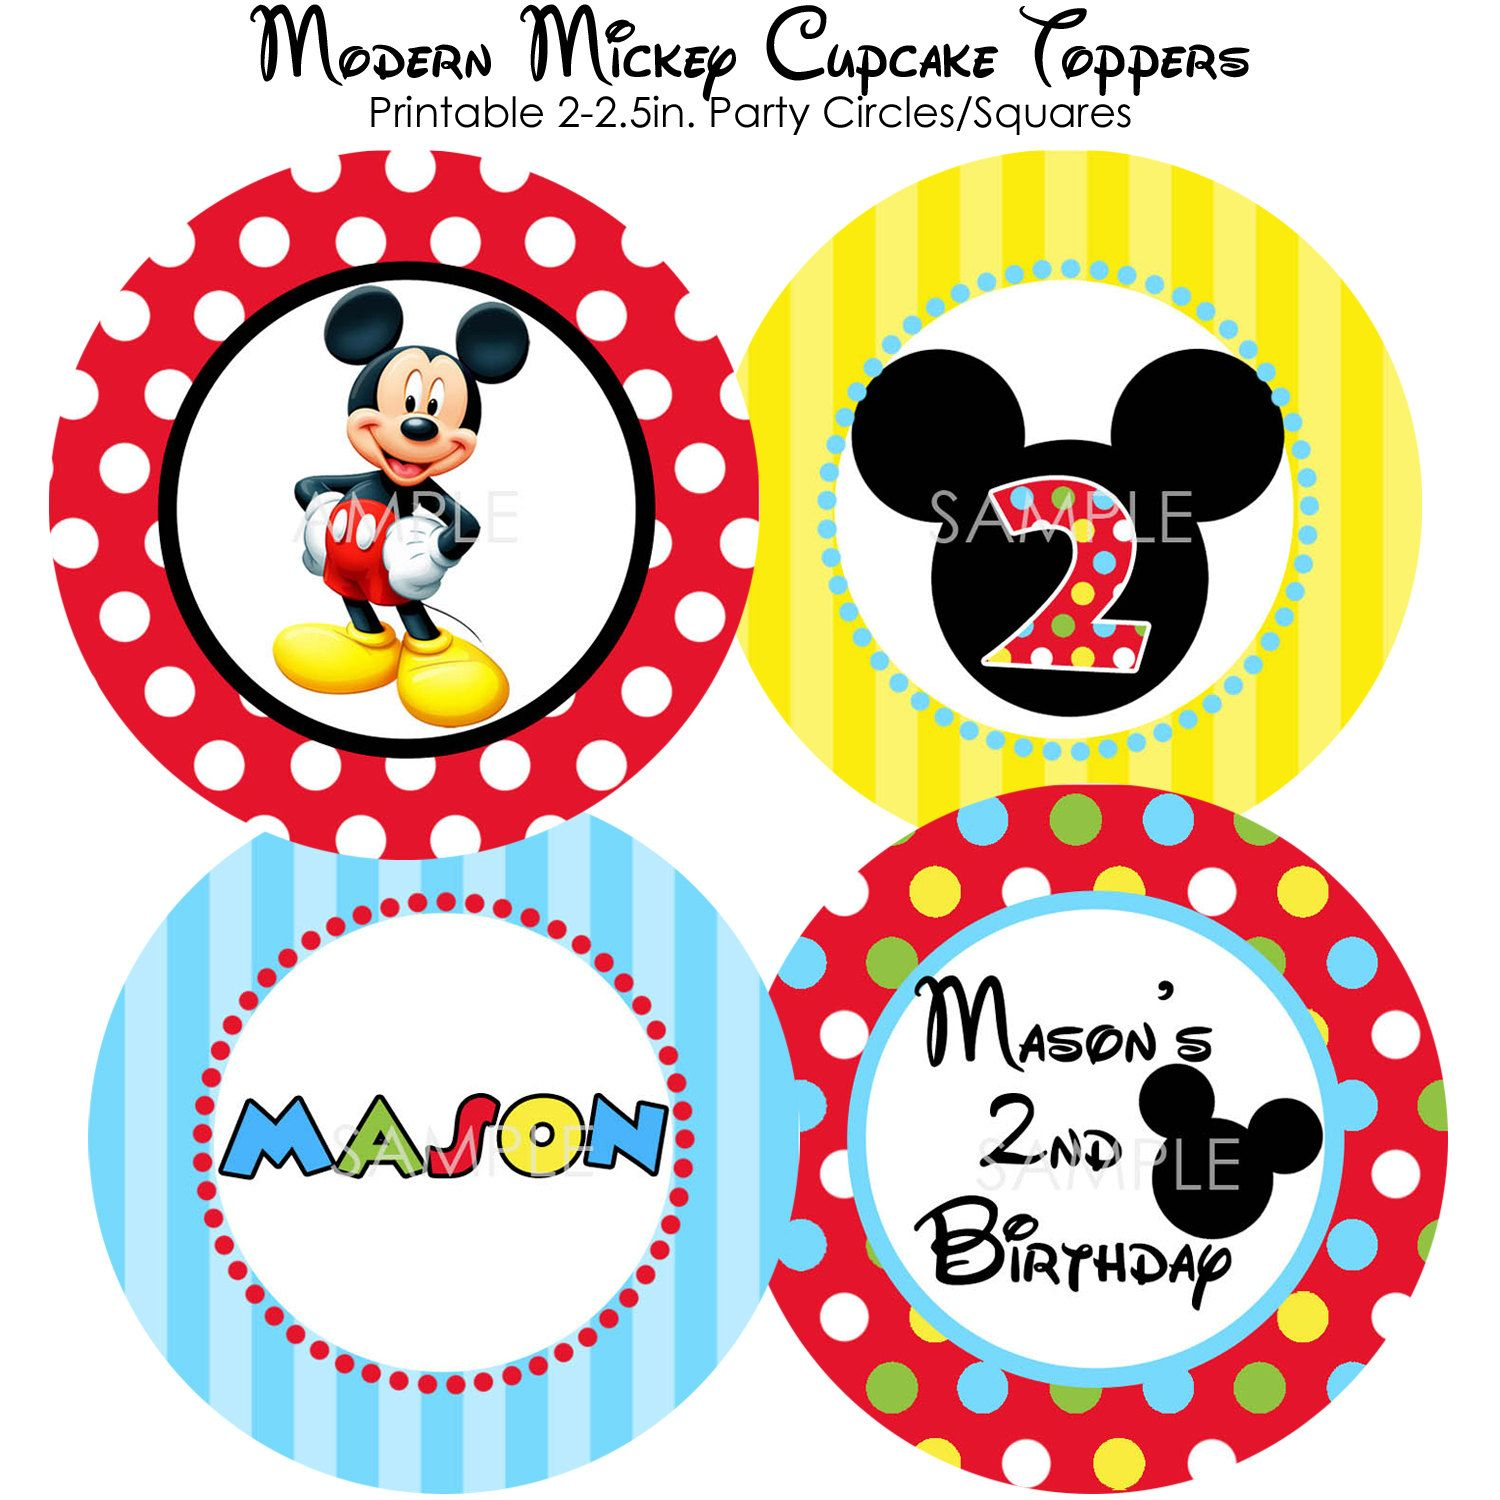 PRINTABLE Modern Mickey Mouse Cupcake Toppers - DIY - Personalized Small Party Circles. $6.00, via Etsy.